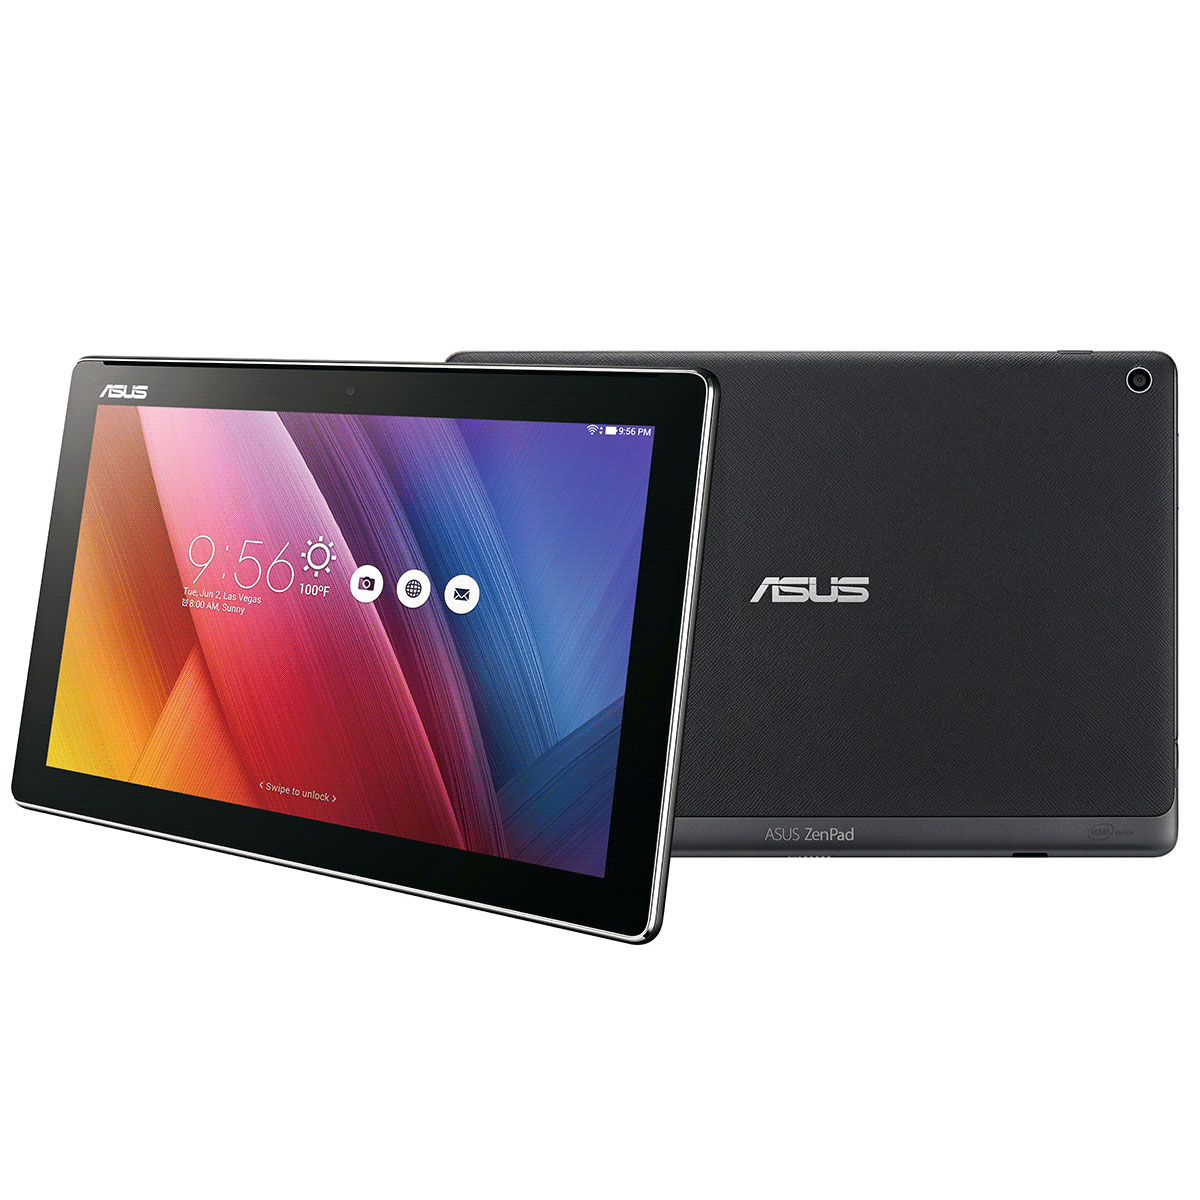 asus zenpad 10 z300c 1a057a noir tablette tactile asus sur. Black Bedroom Furniture Sets. Home Design Ideas